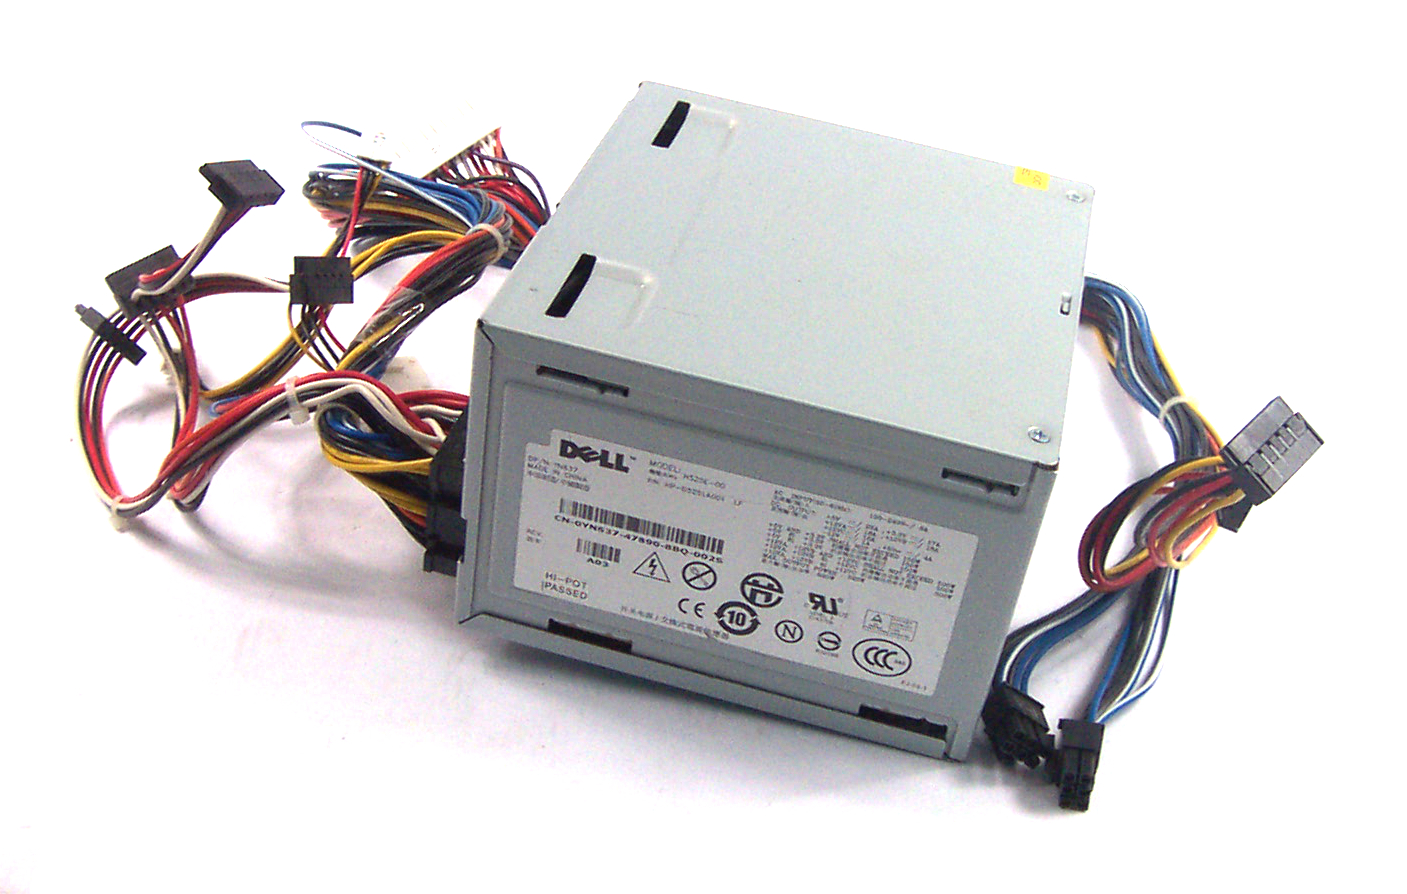 Dell YN637 Precision T3400 525W 24 Pin Power Supply - H525E-00 / KP500